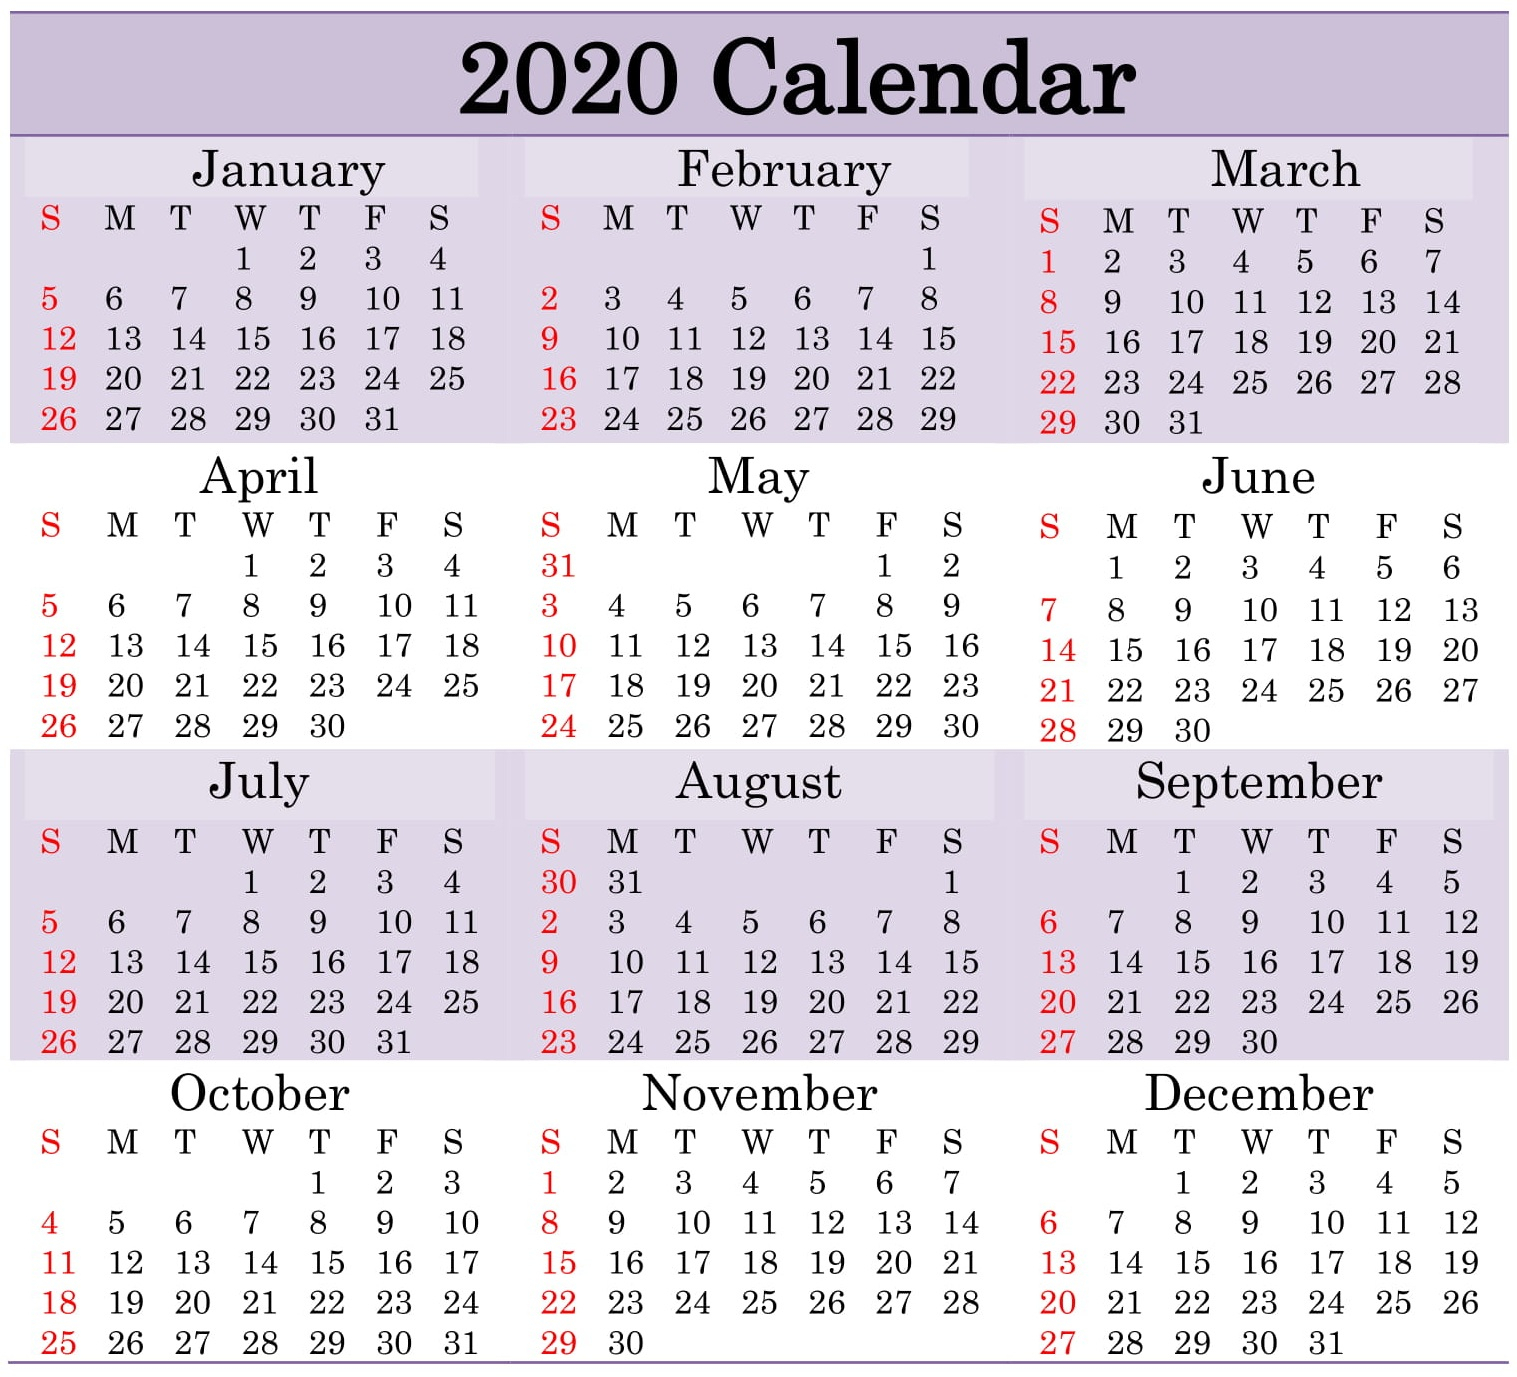 Printable 2020 Calendar Word Document  Latest Printable inside Julian Date Calendar For Year 2020